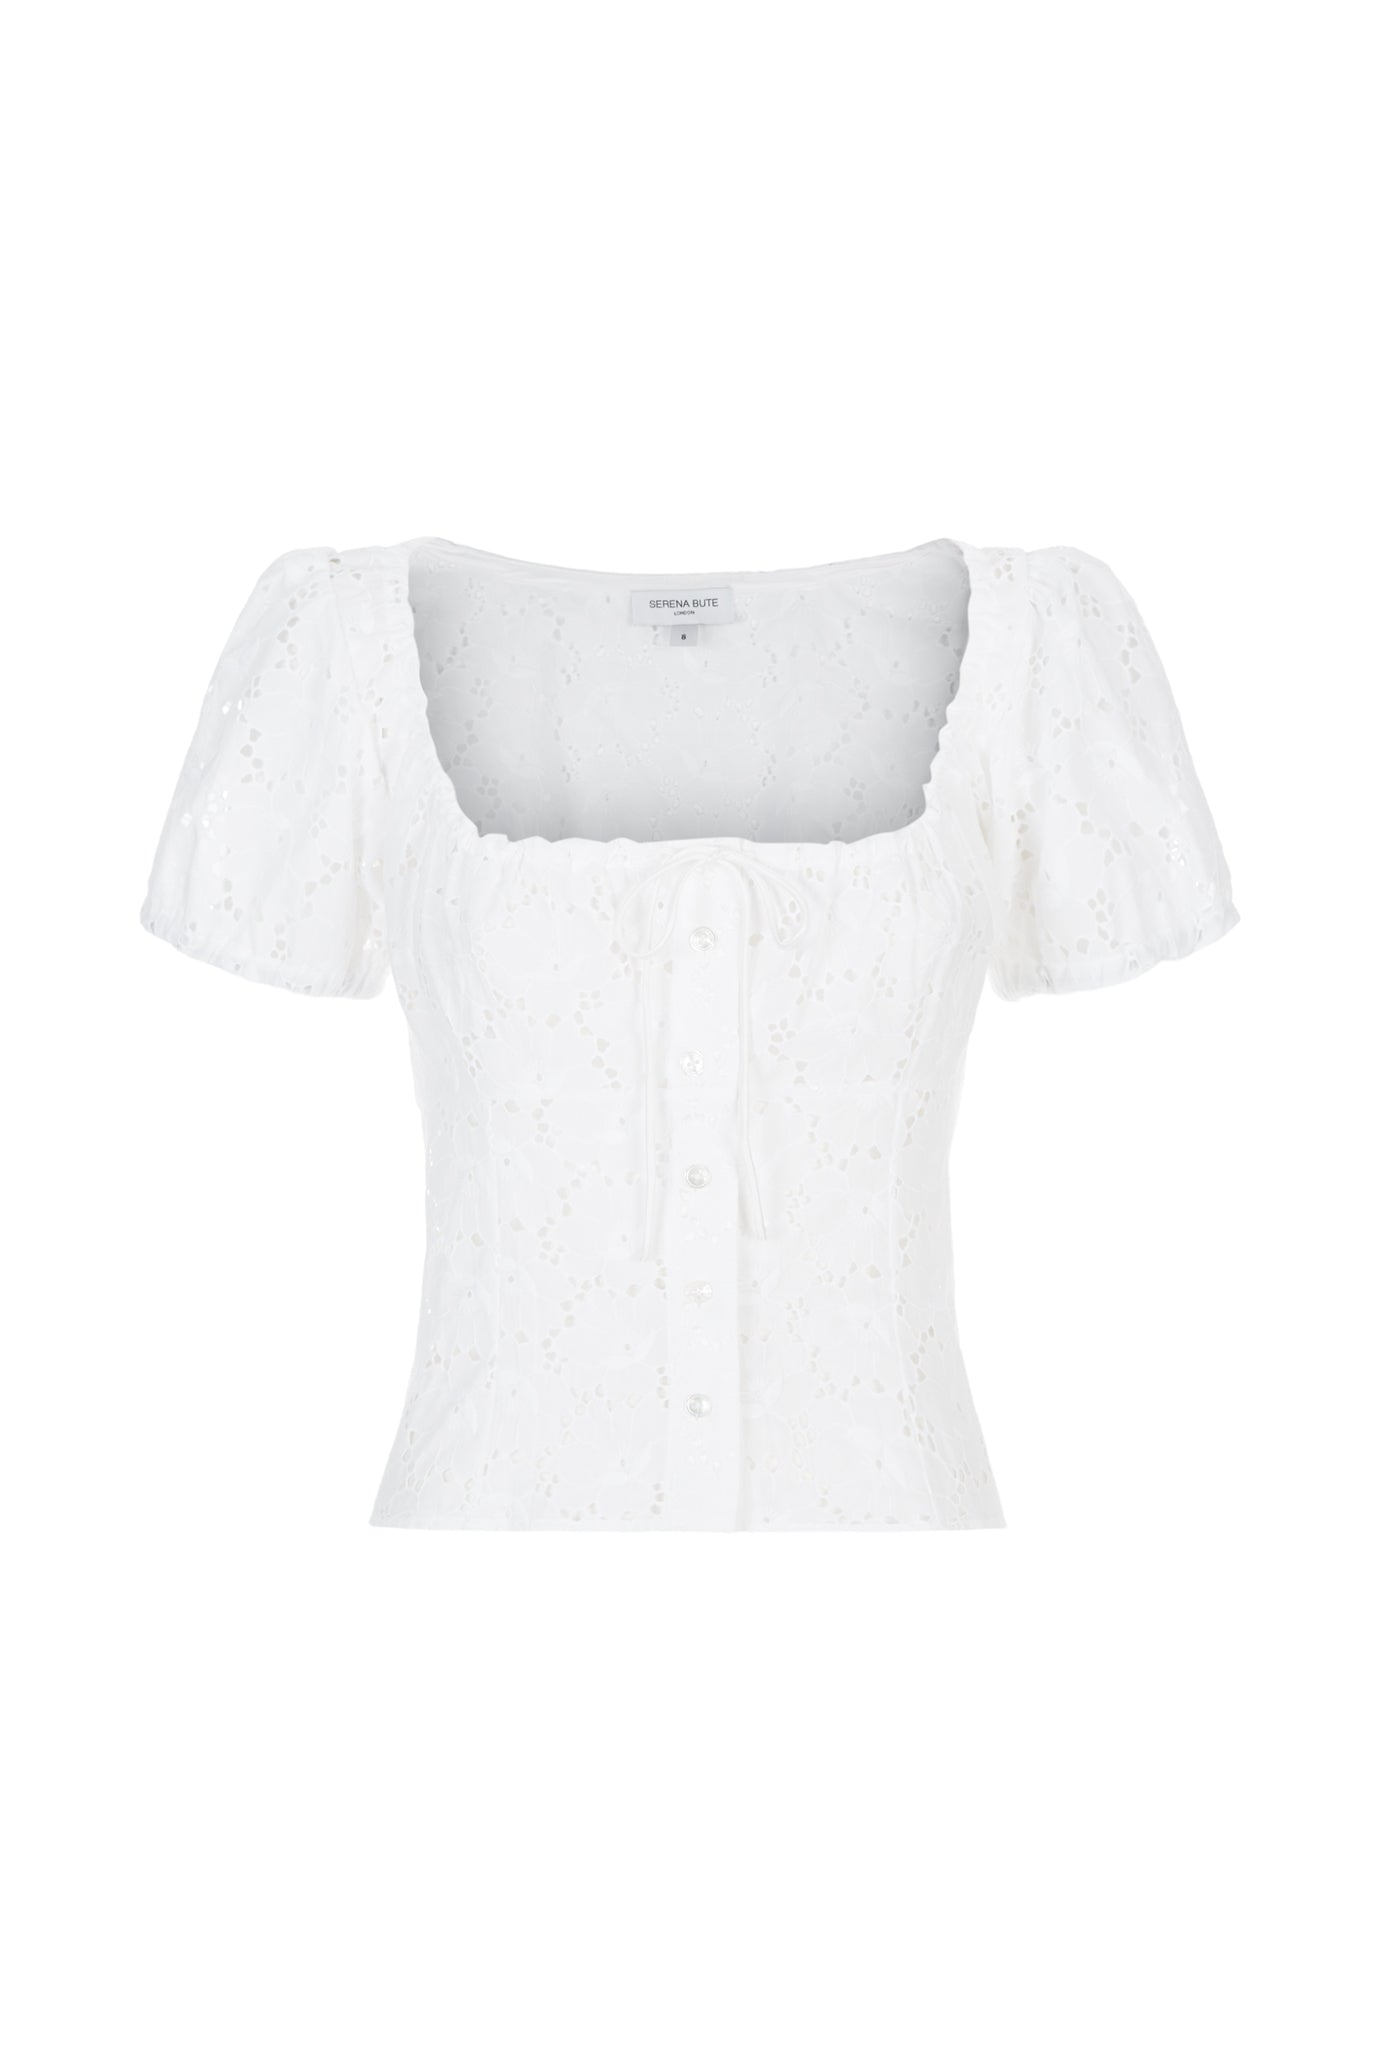 The Bodice Top - White Lace Cotton